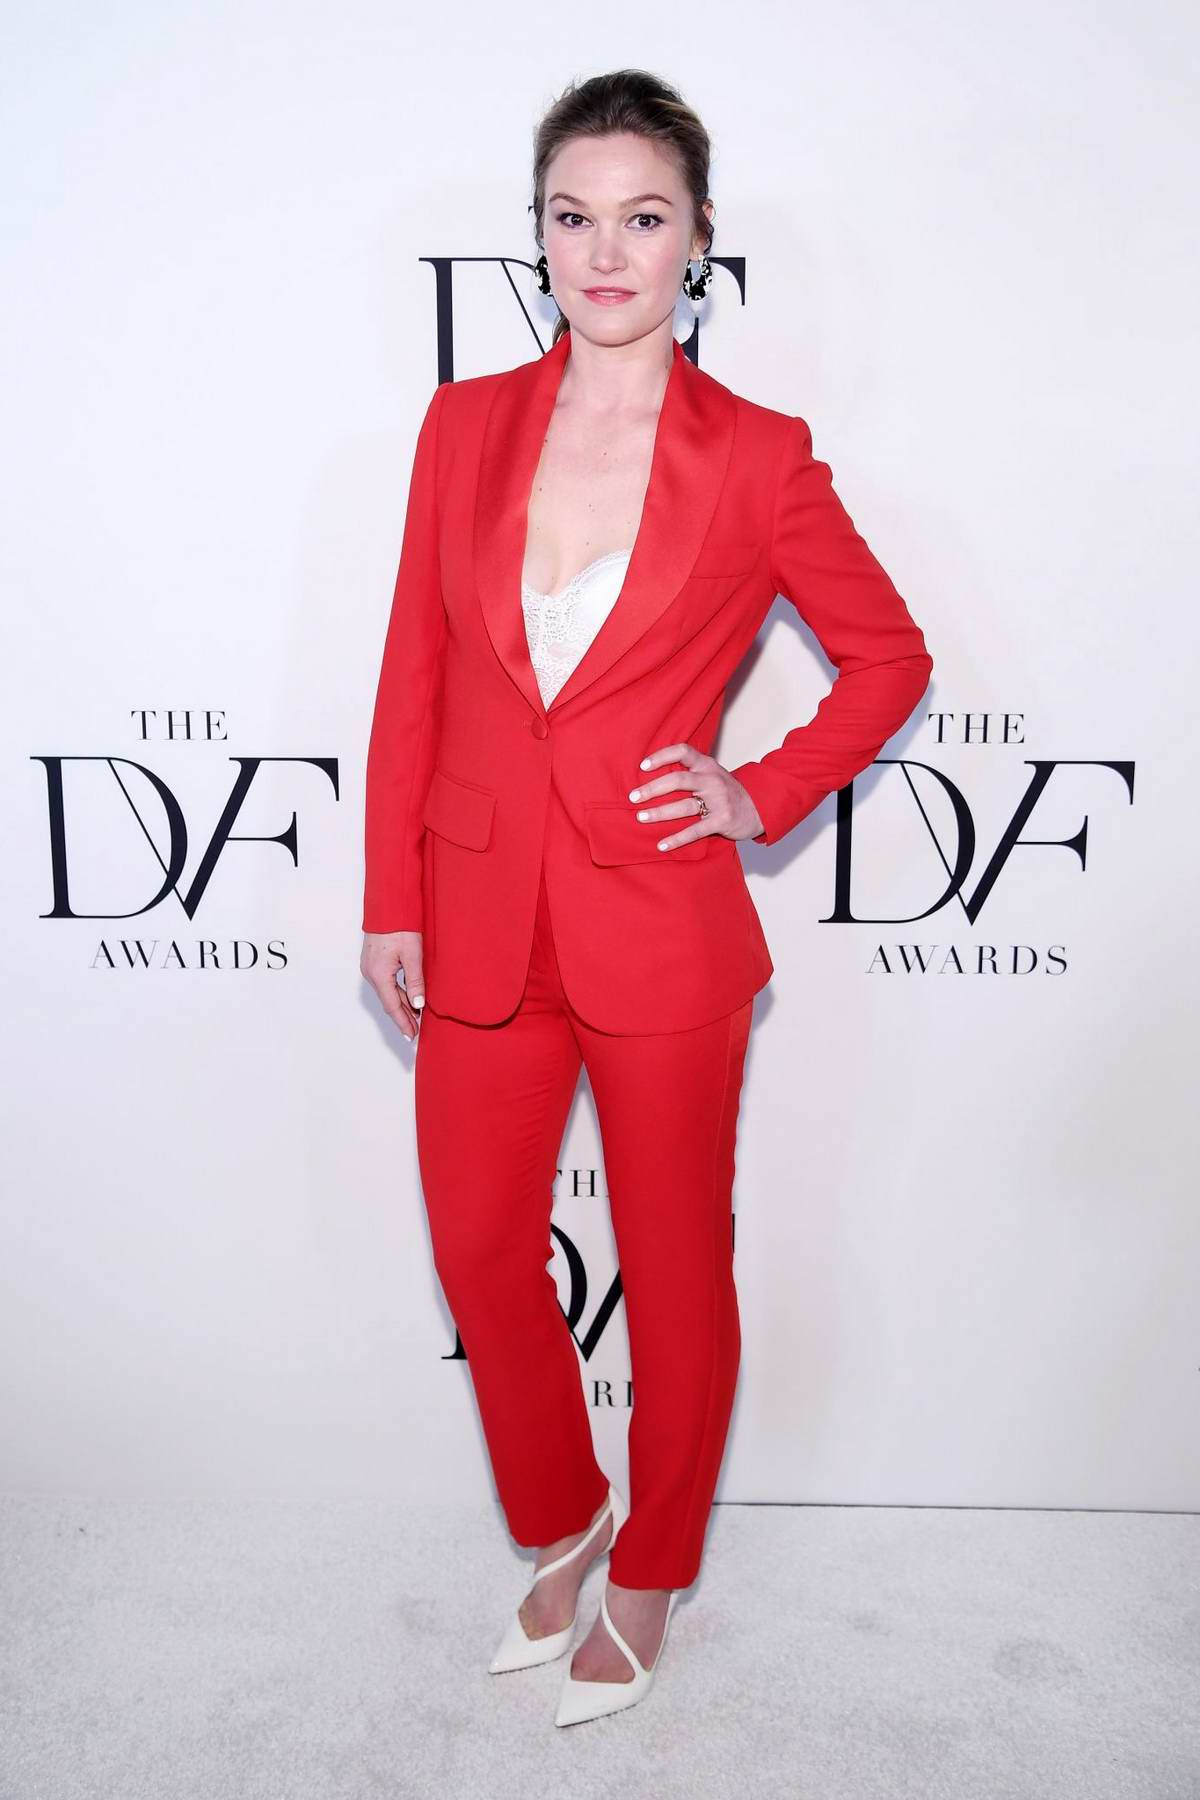 Julia Stiles attends 10th Annual DVF Awards in New York City